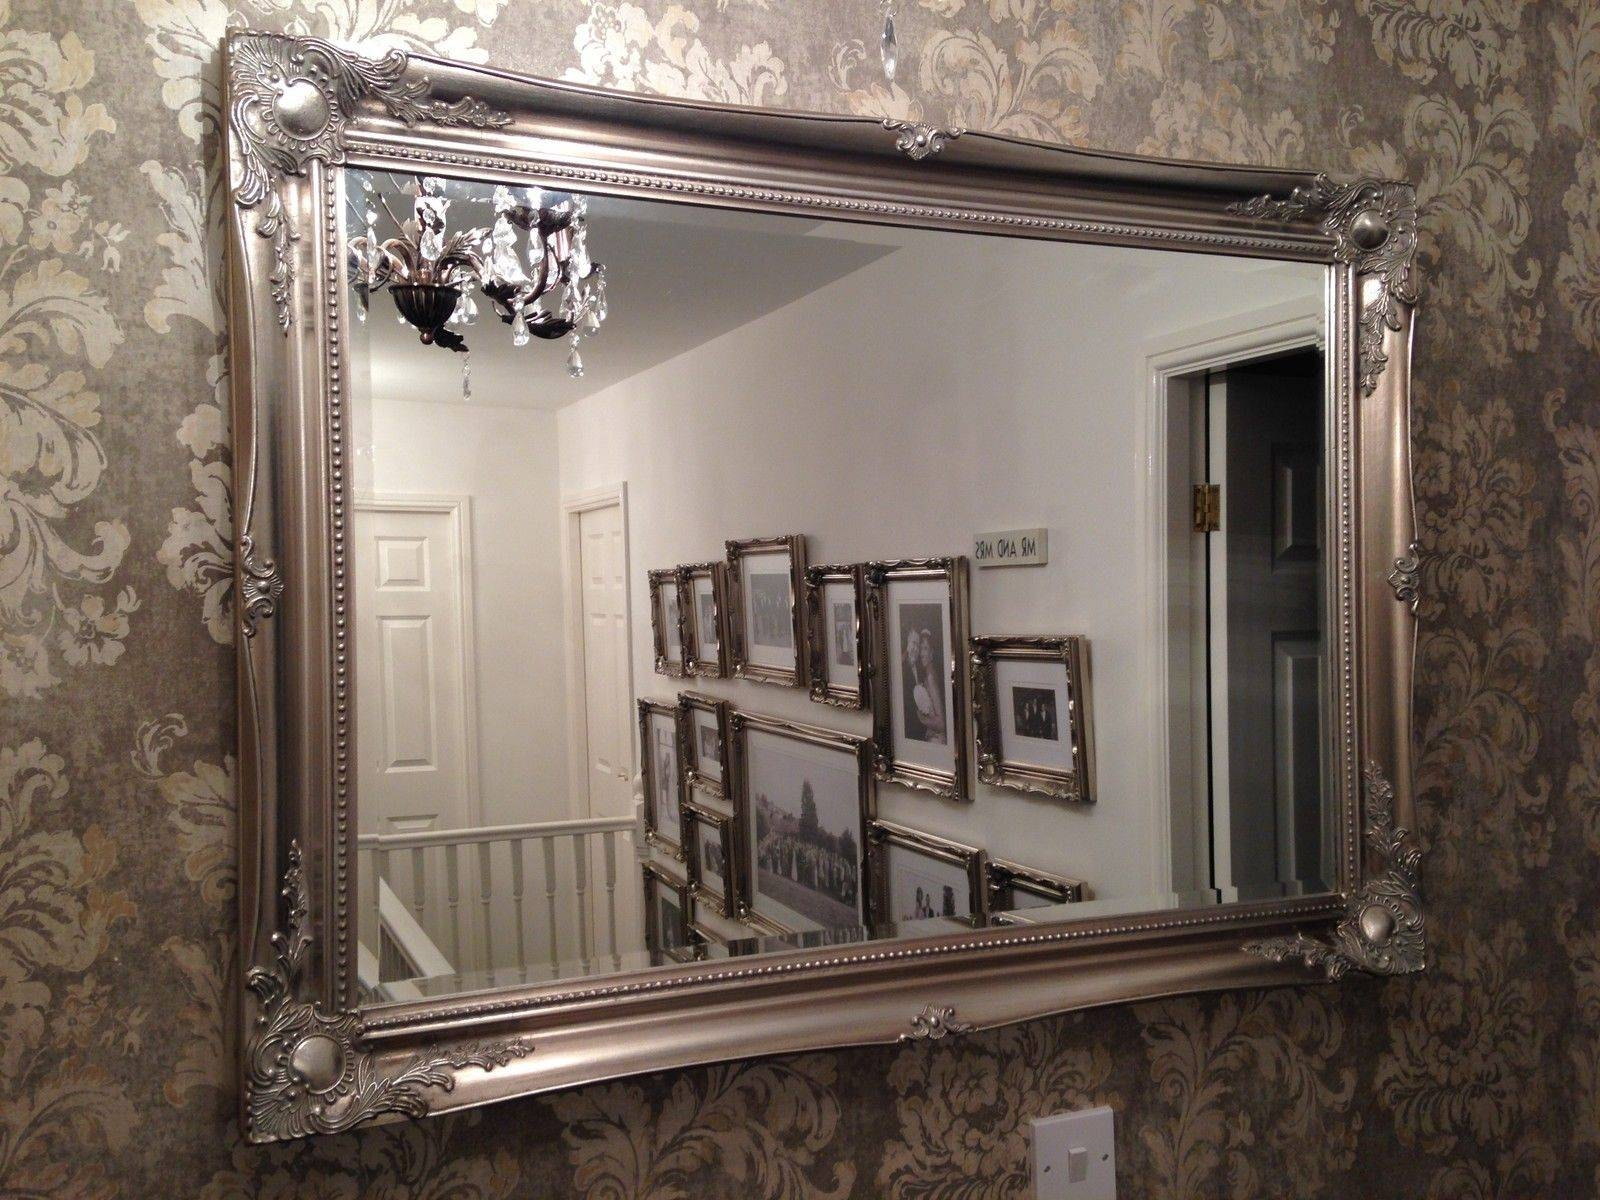 Large Antique Silver Elegant Wall Mirror - Free Uk Postage inside Bevelled Mirrors (Image 19 of 25)